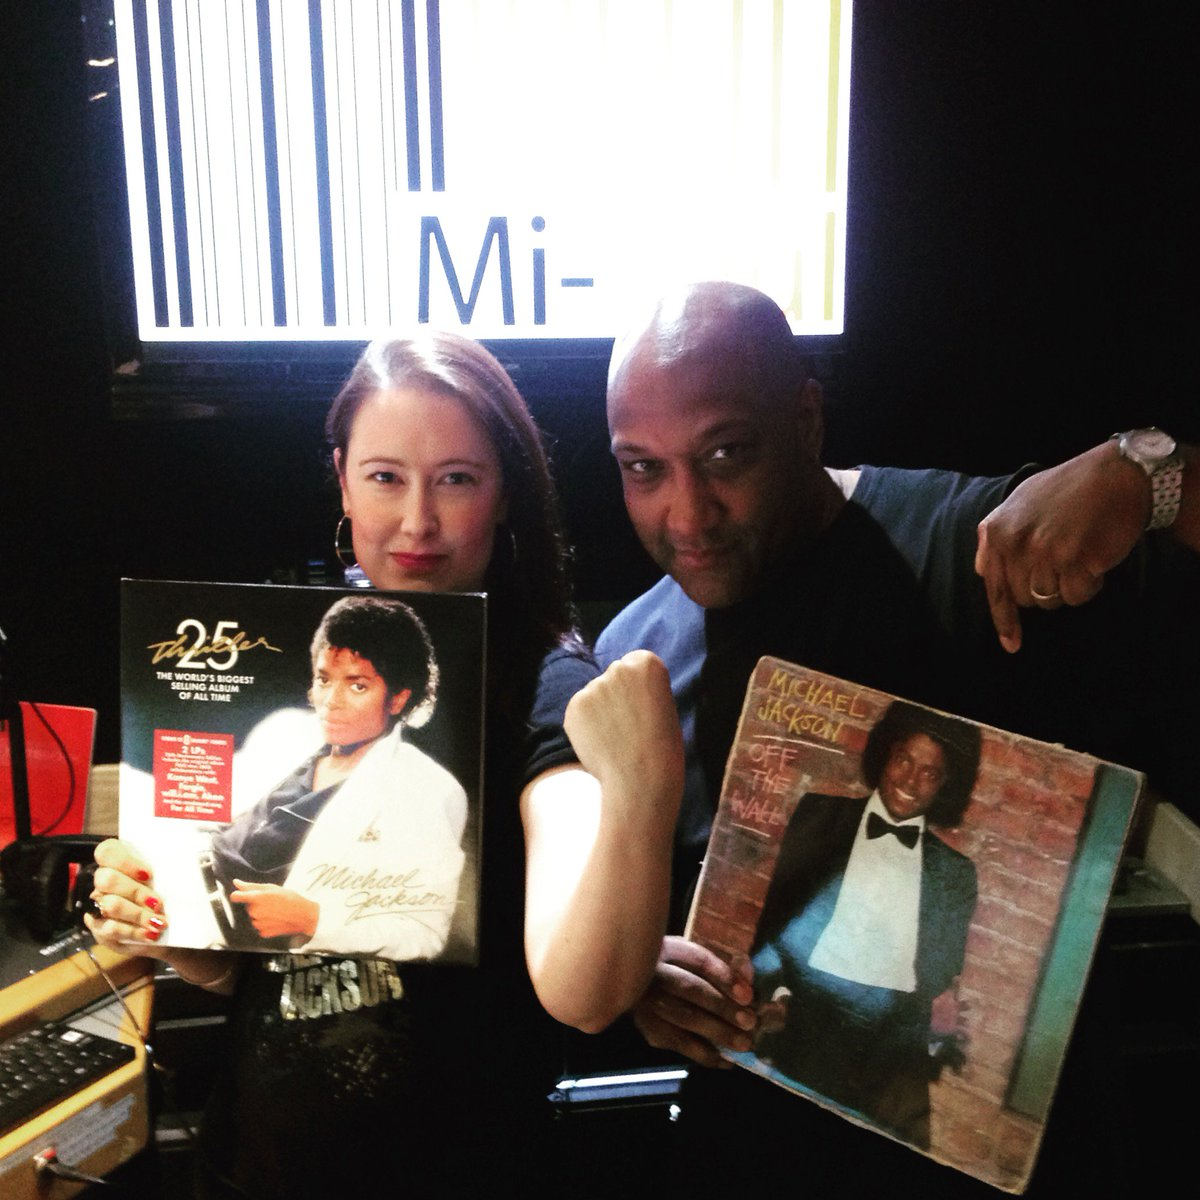 2nite on #TheBIGRnBShow on @MiSoulTweets radio it's a @michaeljackson album off special #OffTheWall V. #Thriller https://t.co/urP5JCz57i